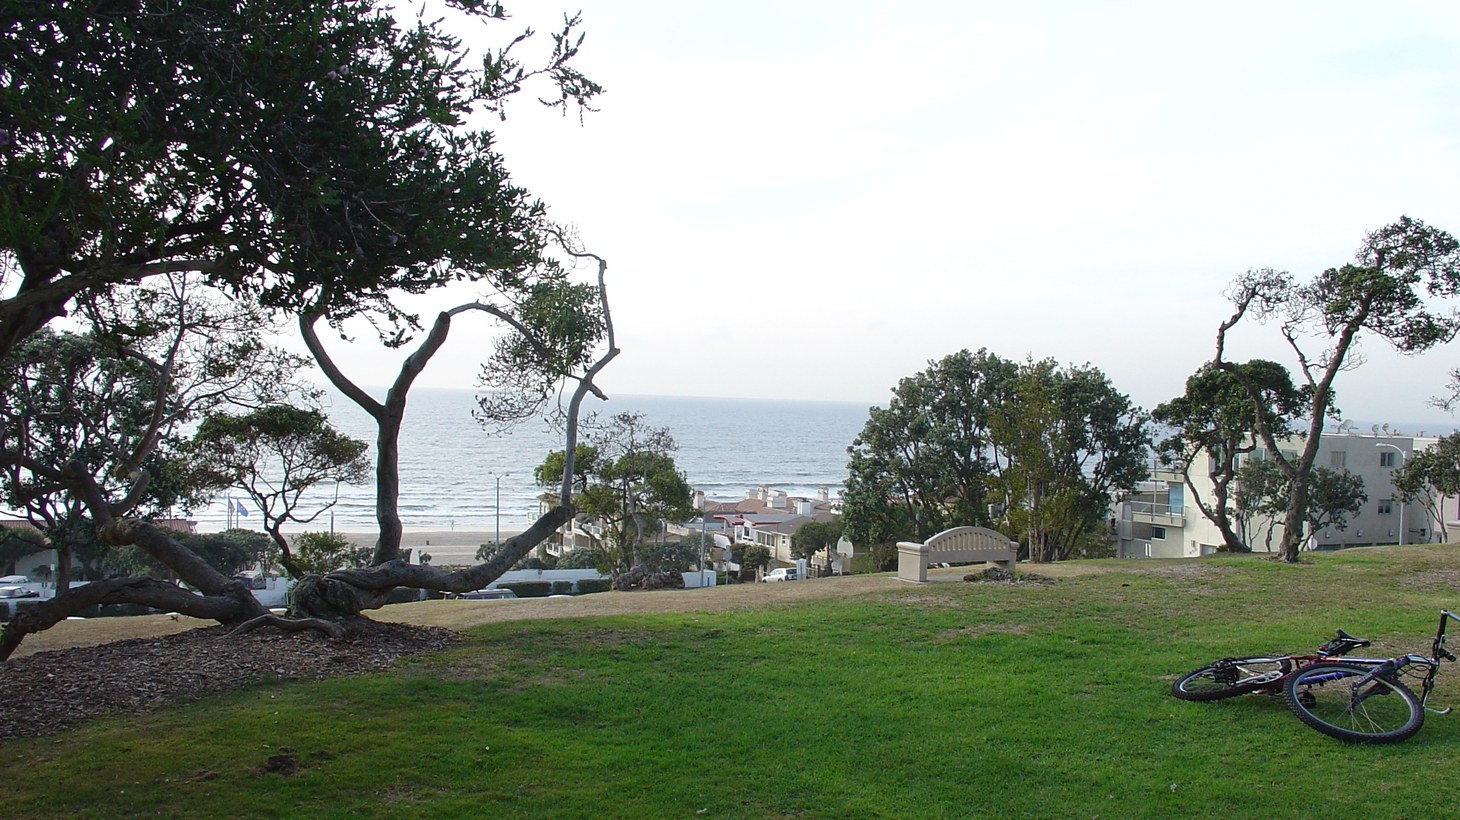 Bruce's Beach, a park in Manhattan Beach, has been the site of racial justice protests over the past year.